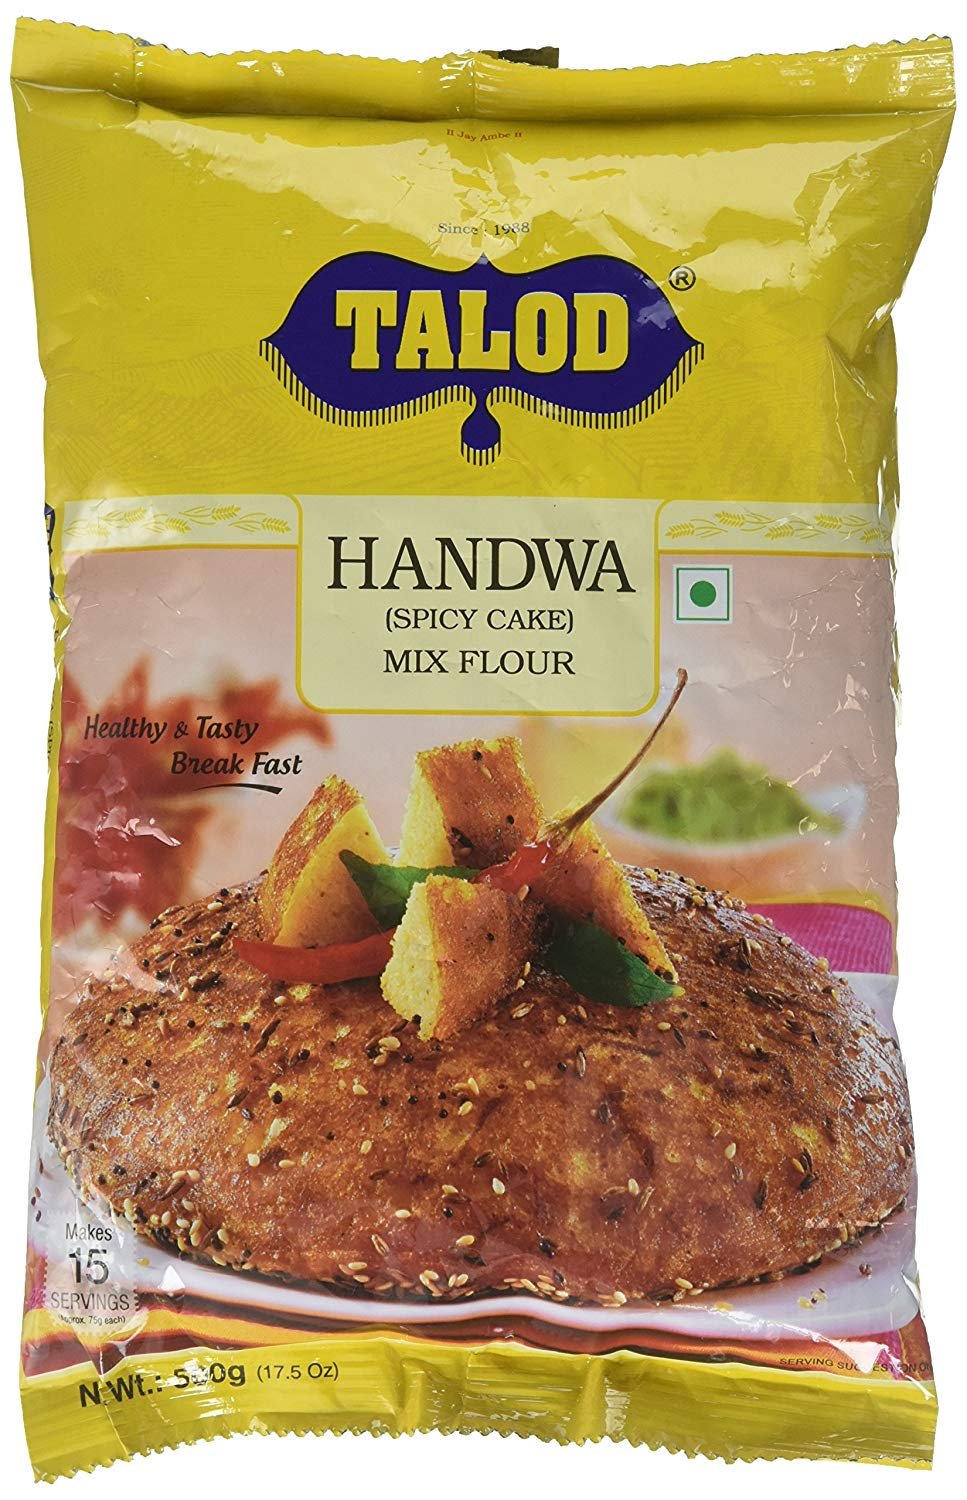 Handva (Spicy cake) Mix Flour